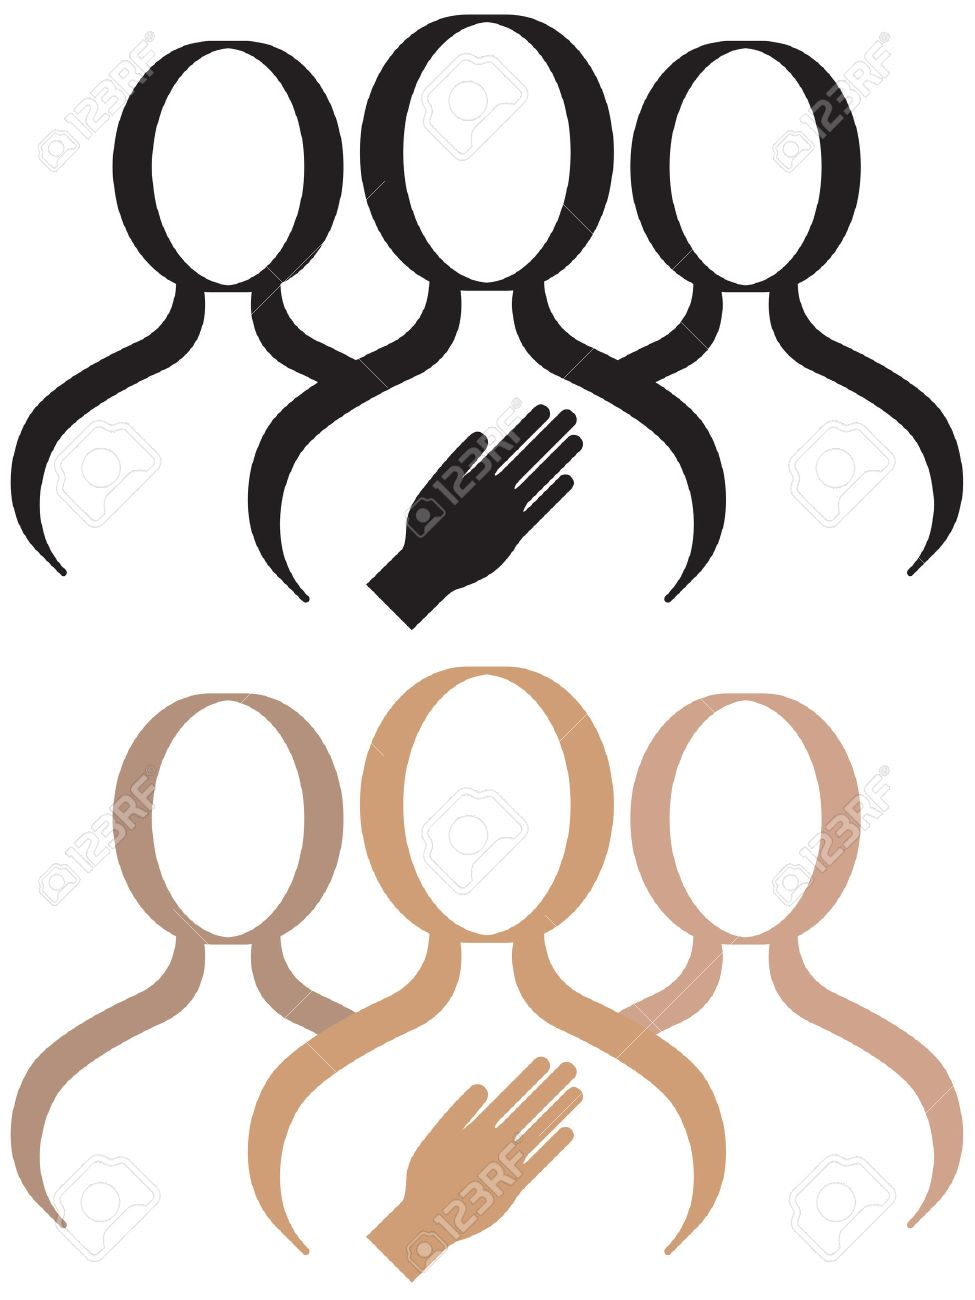 A support group for a person who is making a commitment or pledge. Stock Vector - 6075903